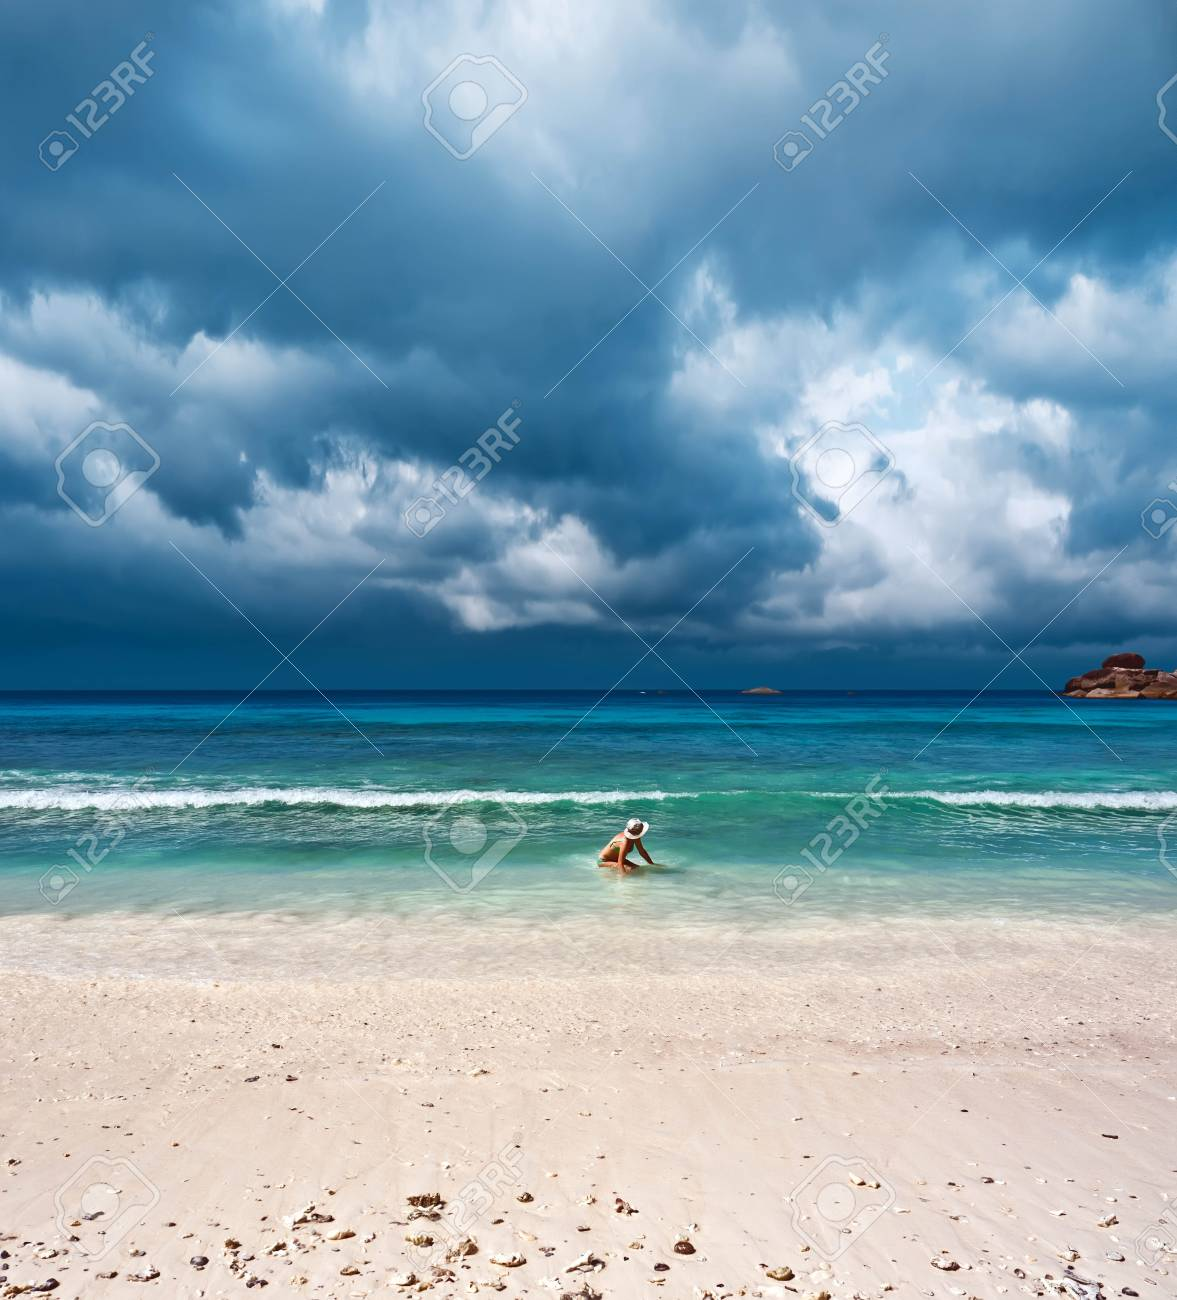 Sea before the storm Stock Photo - 12766277